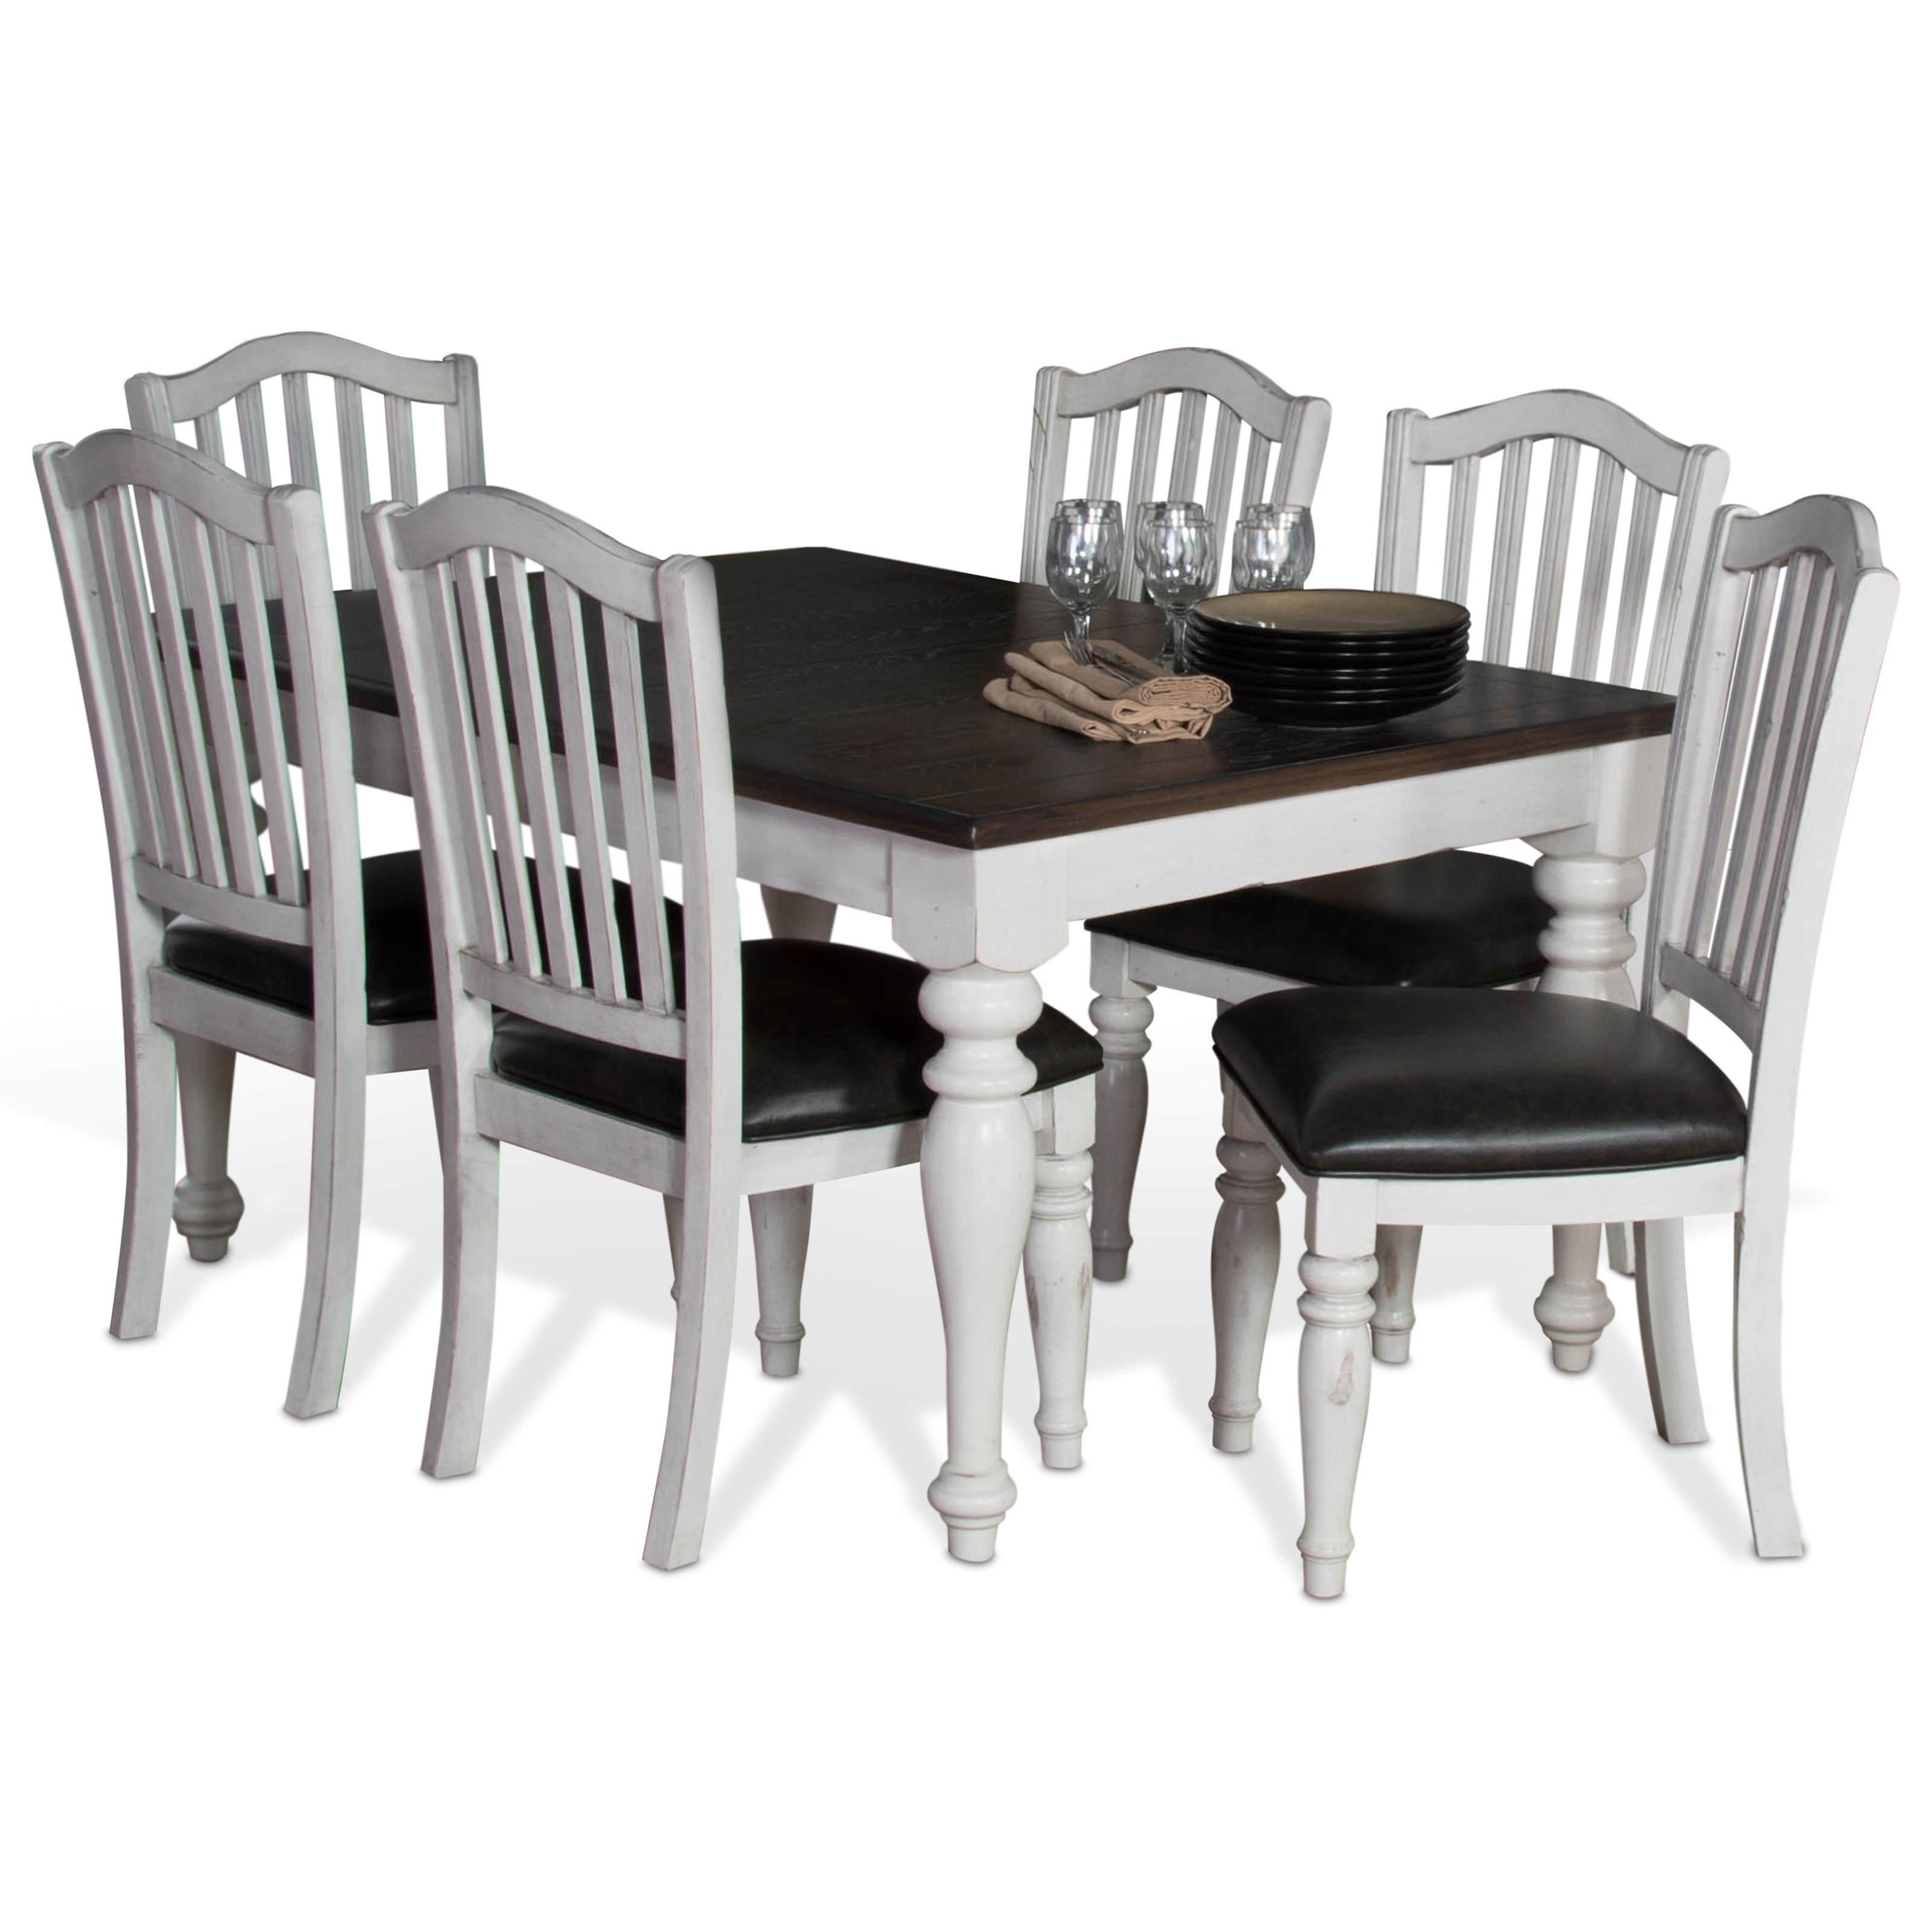 Beau Sunny Designs Bourbon County7 Piece Extension Dining Table Set ...